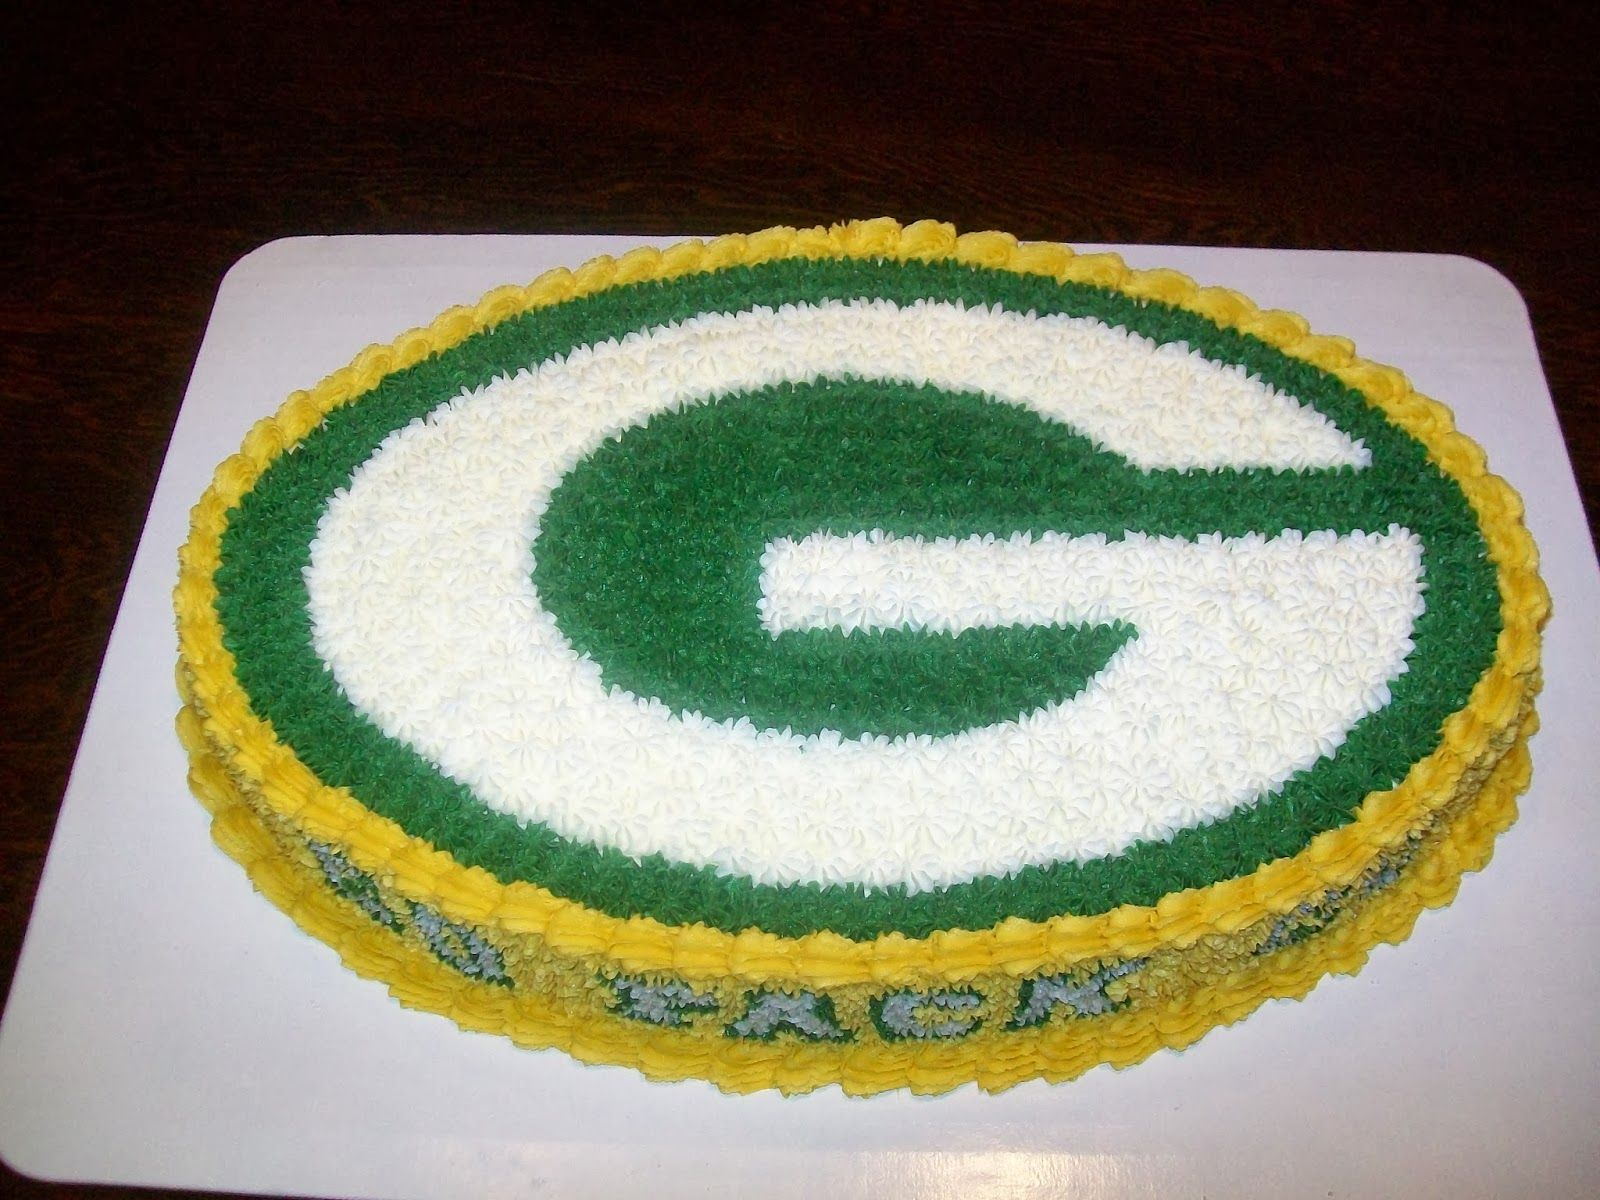 Green Bay Packers Birthday Cake Ideas Green Bay Packers Birthday Green Bay Packers Party Green Bay Packers Cake